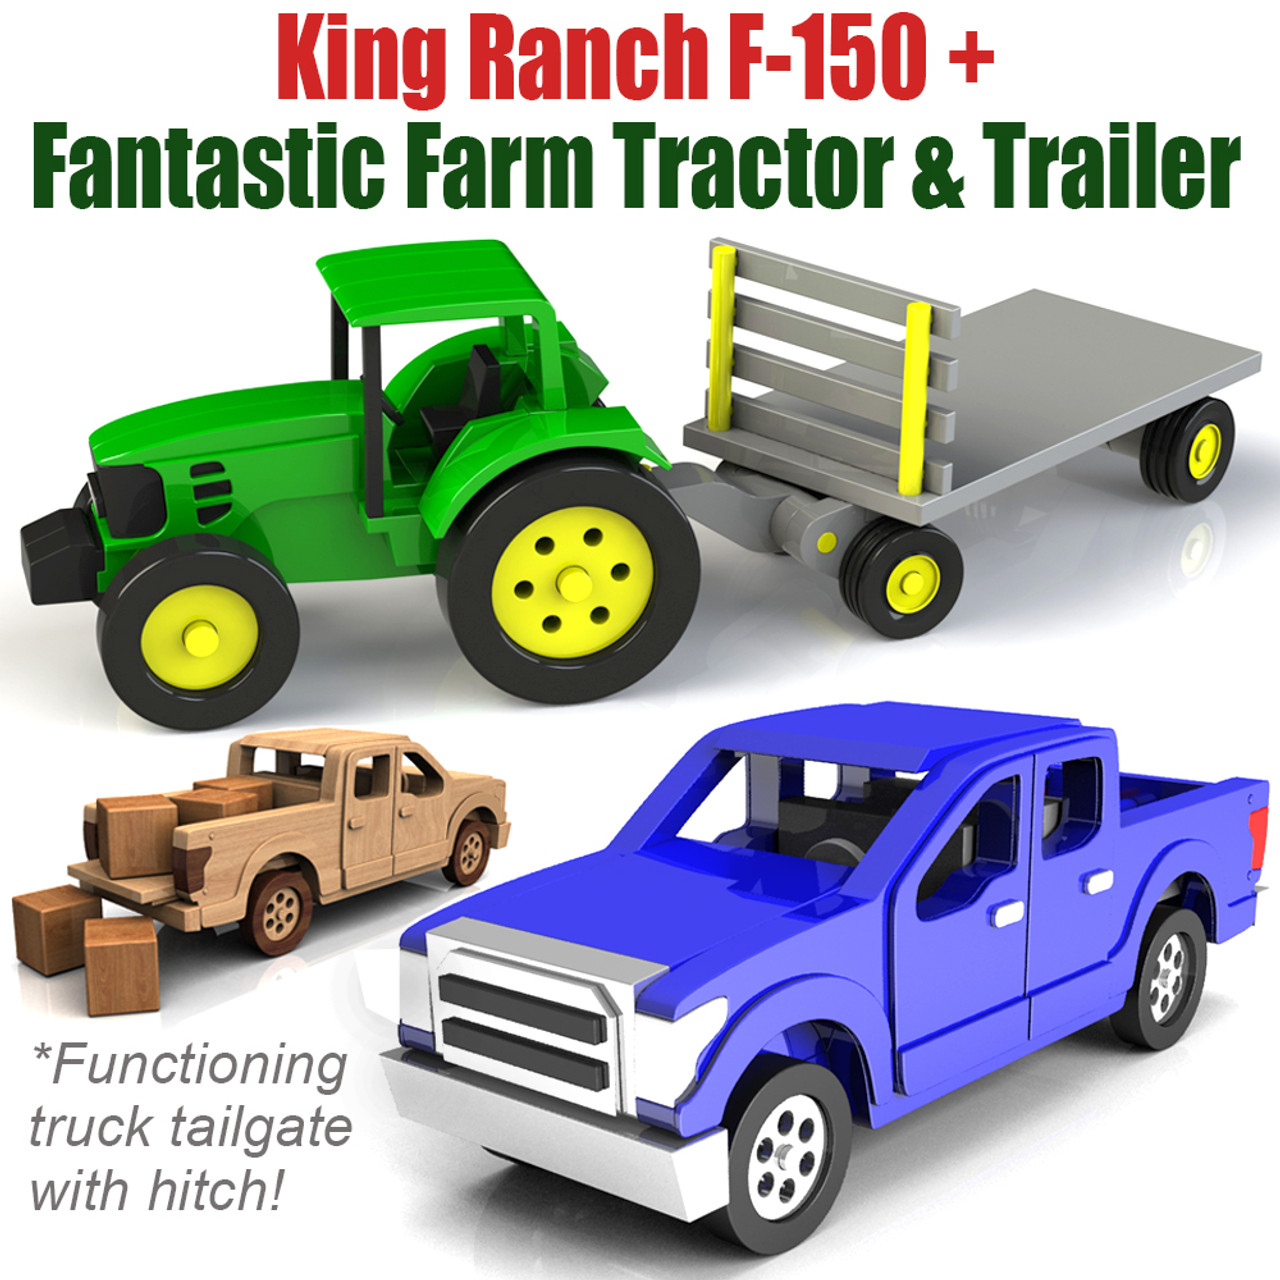 fantastic farm tractor & trailer + king ranch f-150 truck wood toy plans (2  pdf downloads)